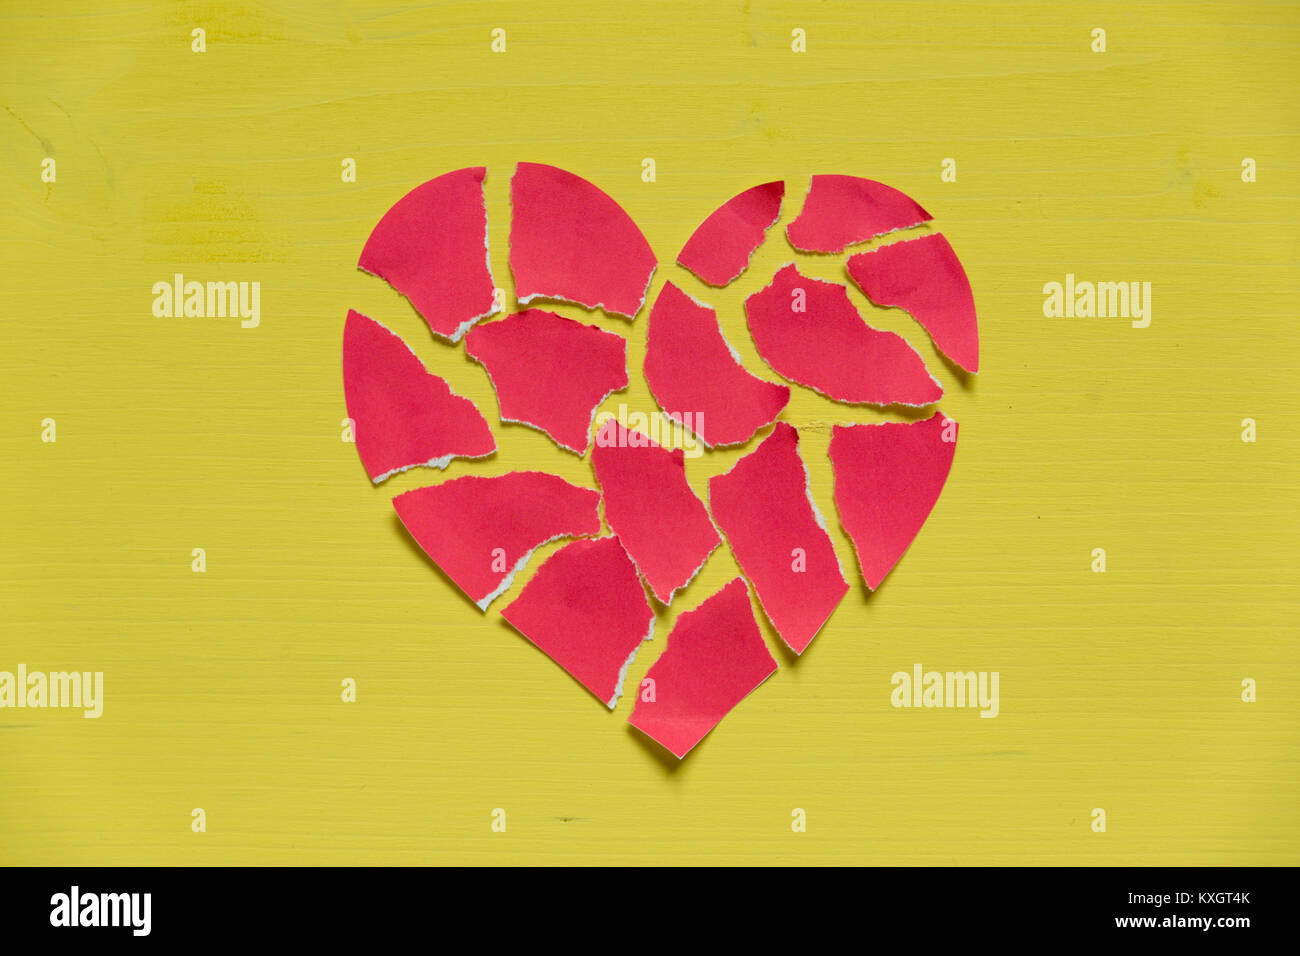 Crushed paper heart on yellow background. Broken heart concept - Stock Image